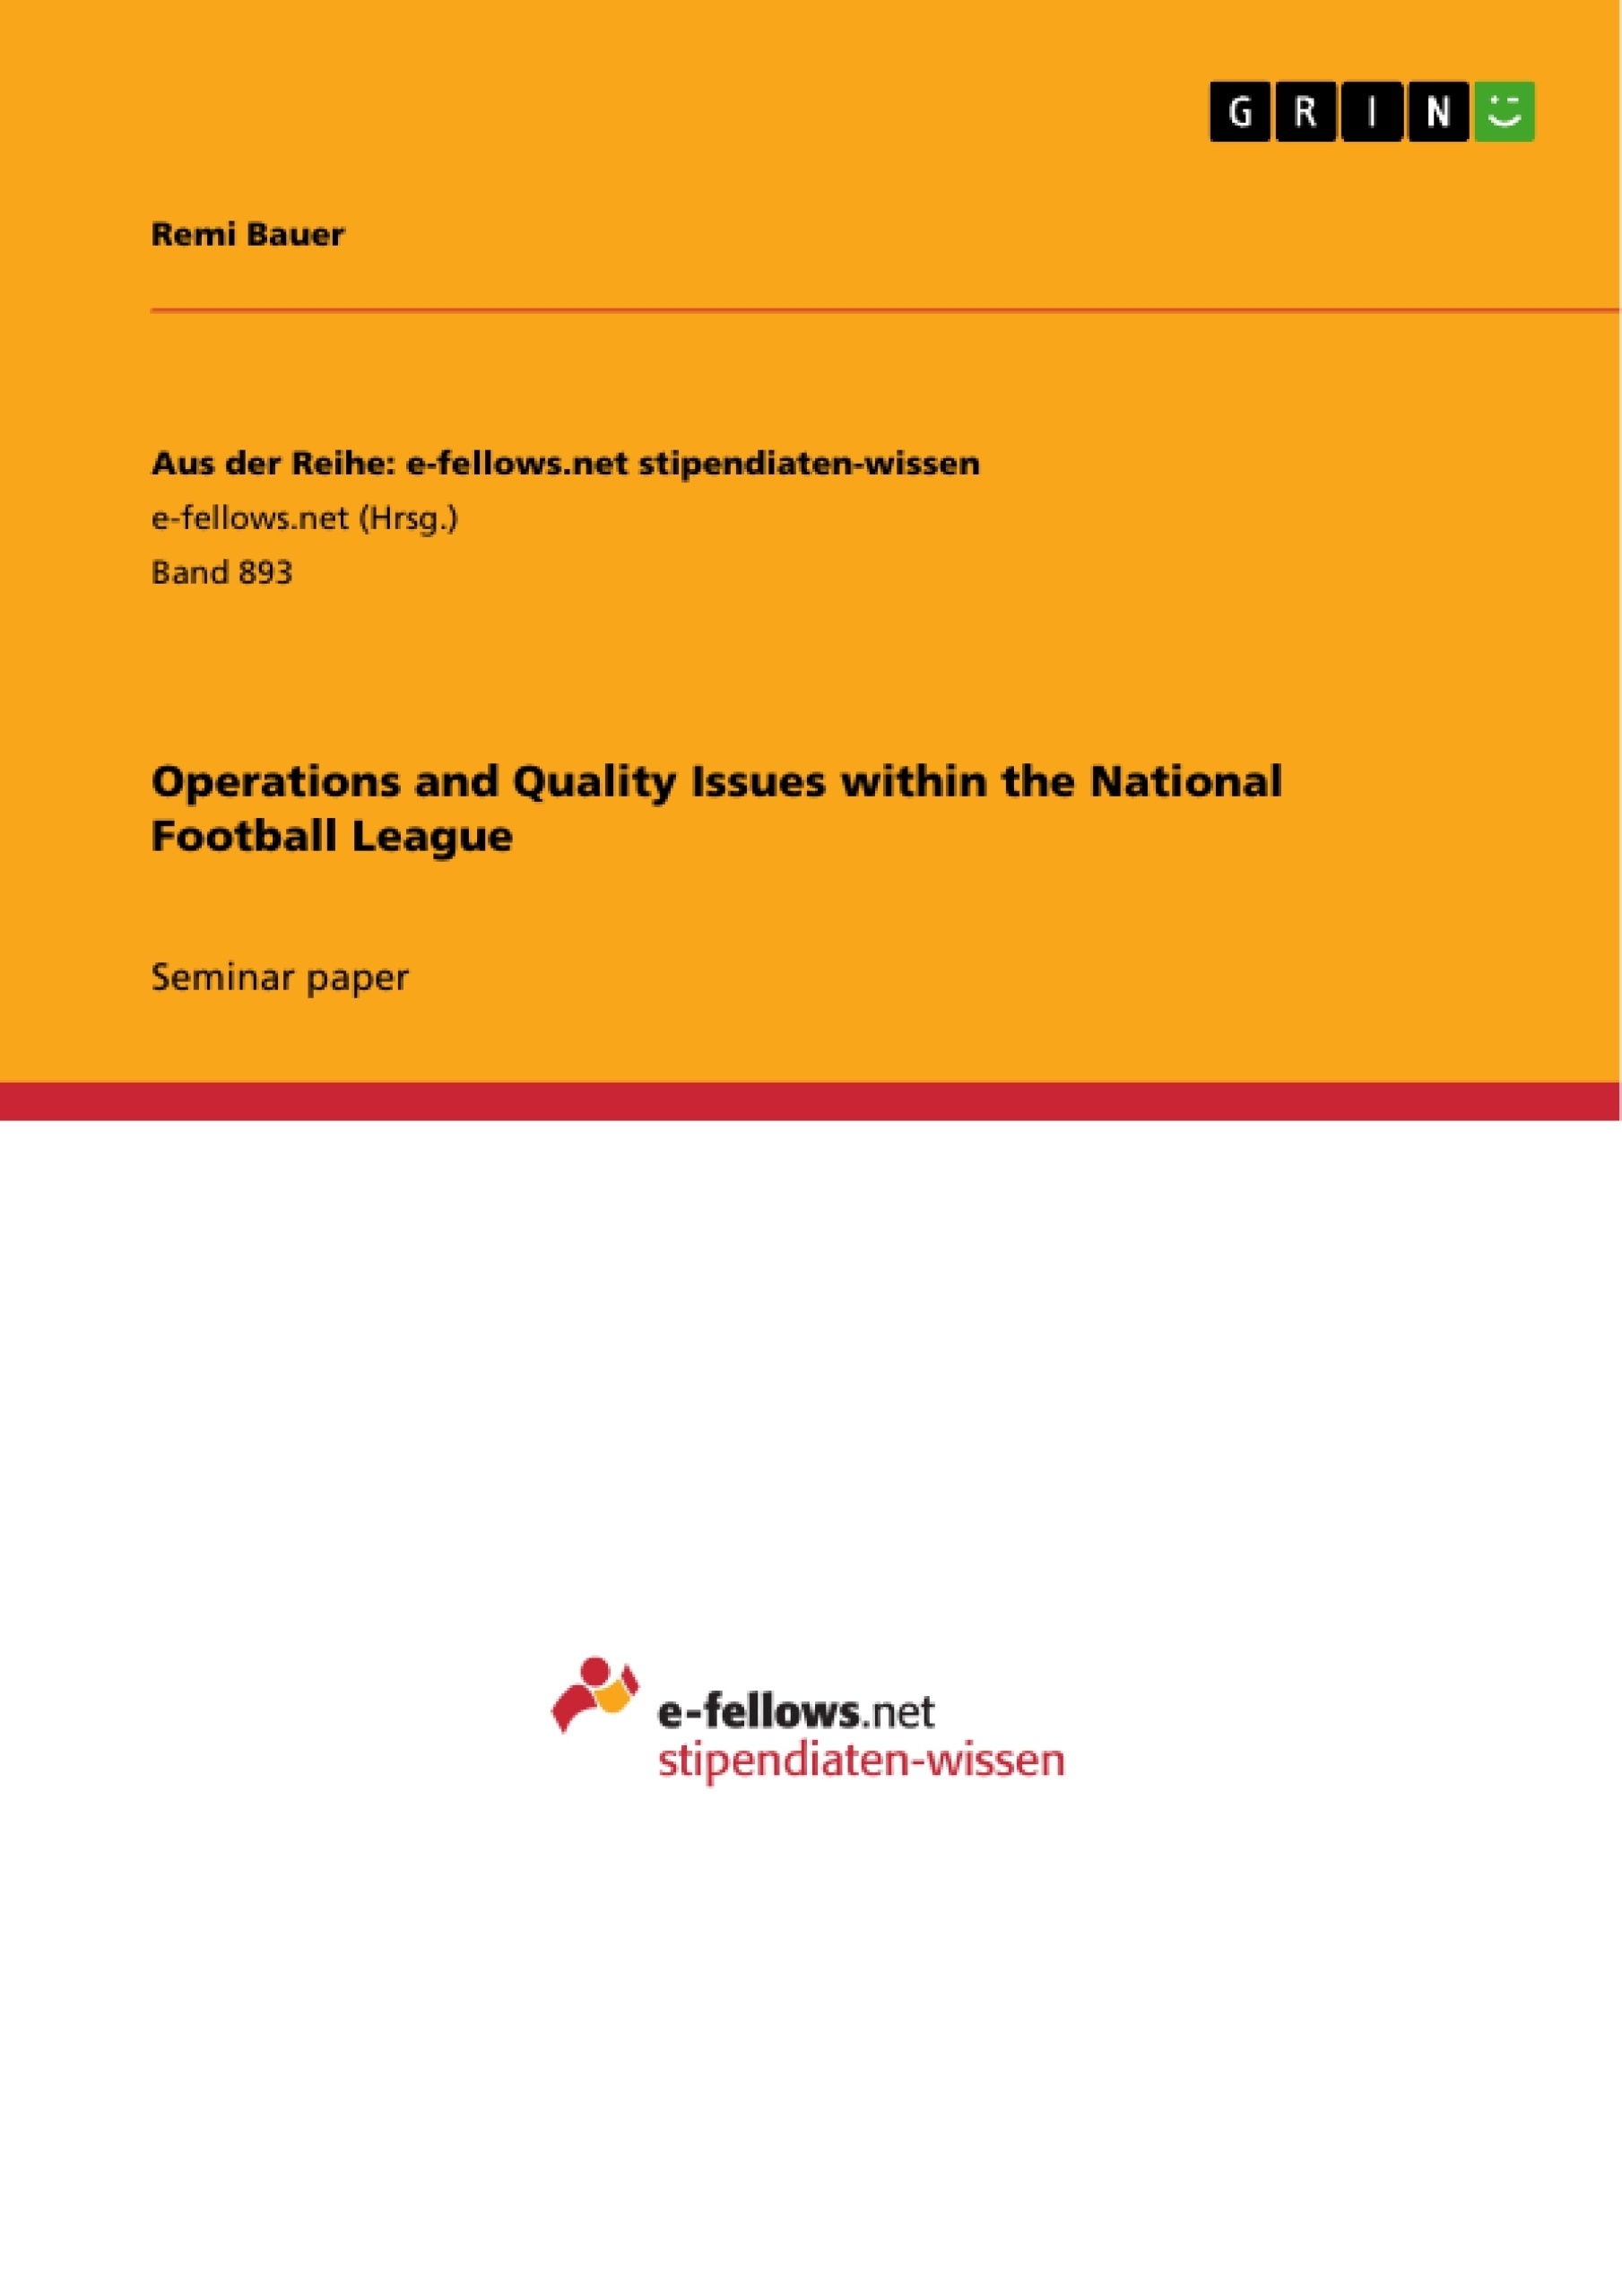 Title: Operations and Quality Issues within the National Football League